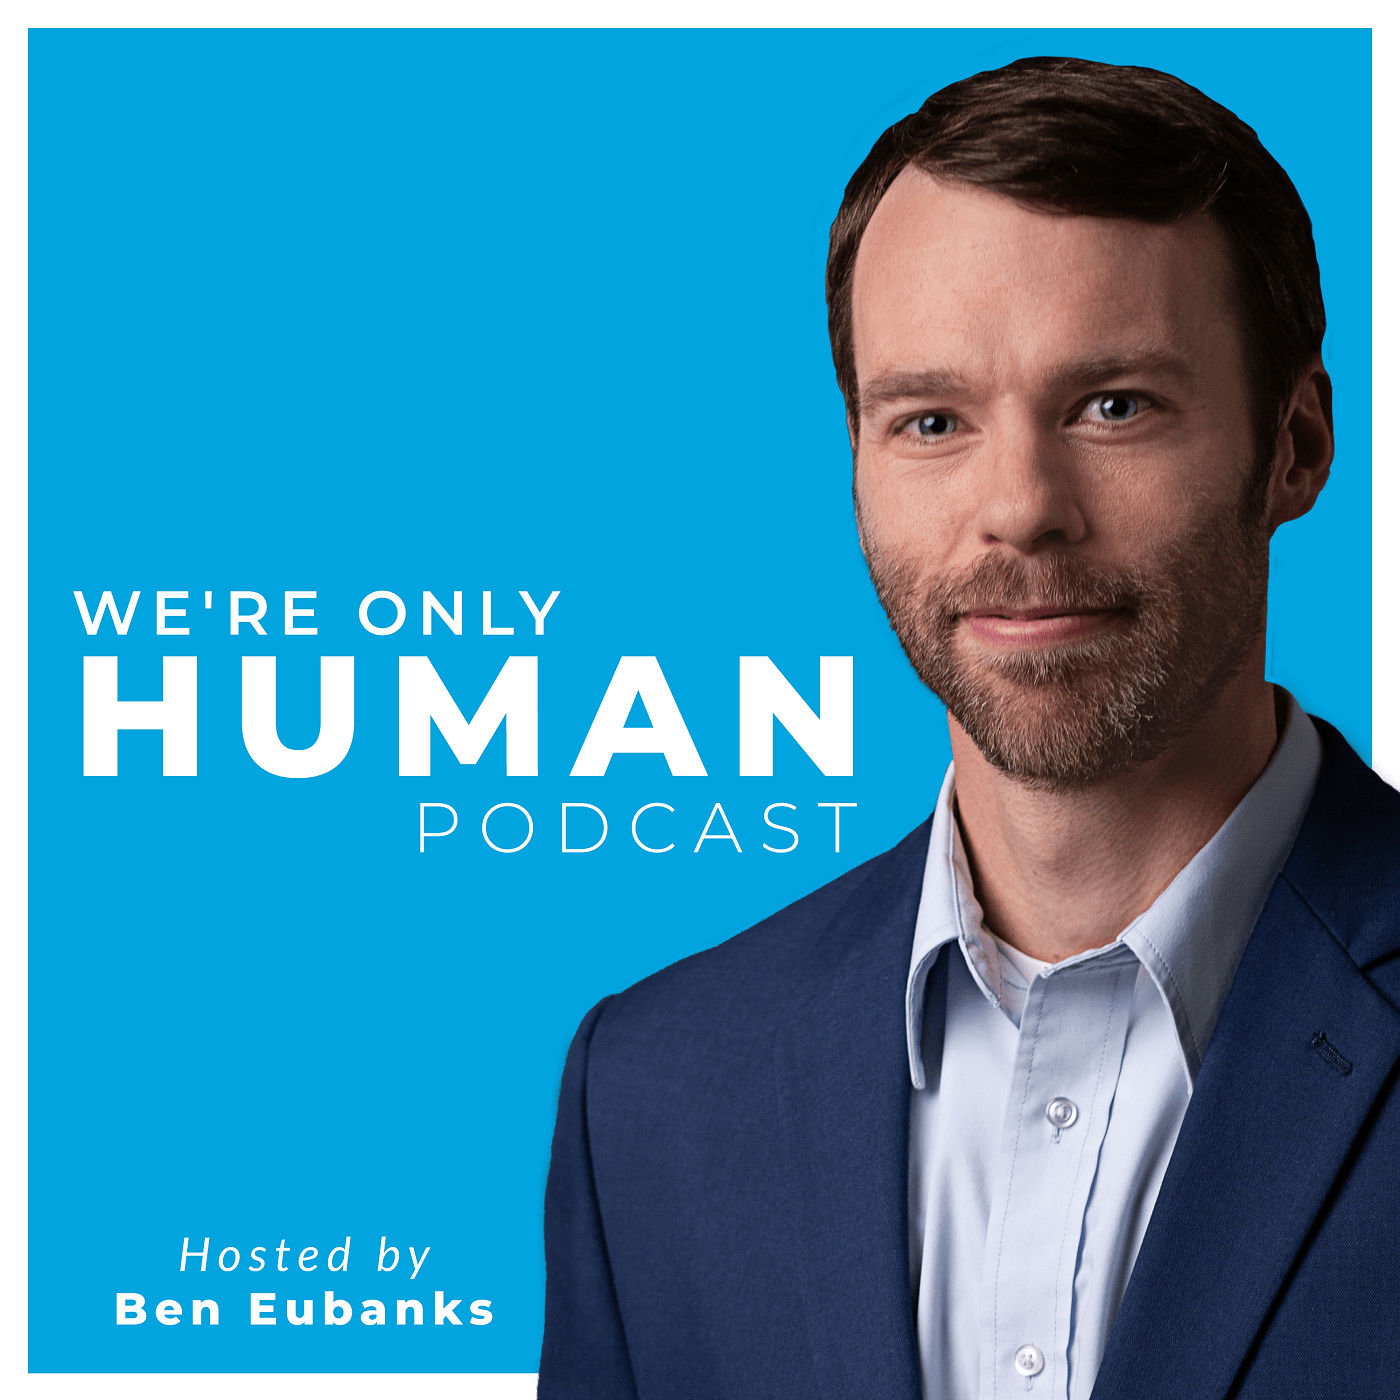 We're Only Human 13 - Calculating the ROI of Human Resources